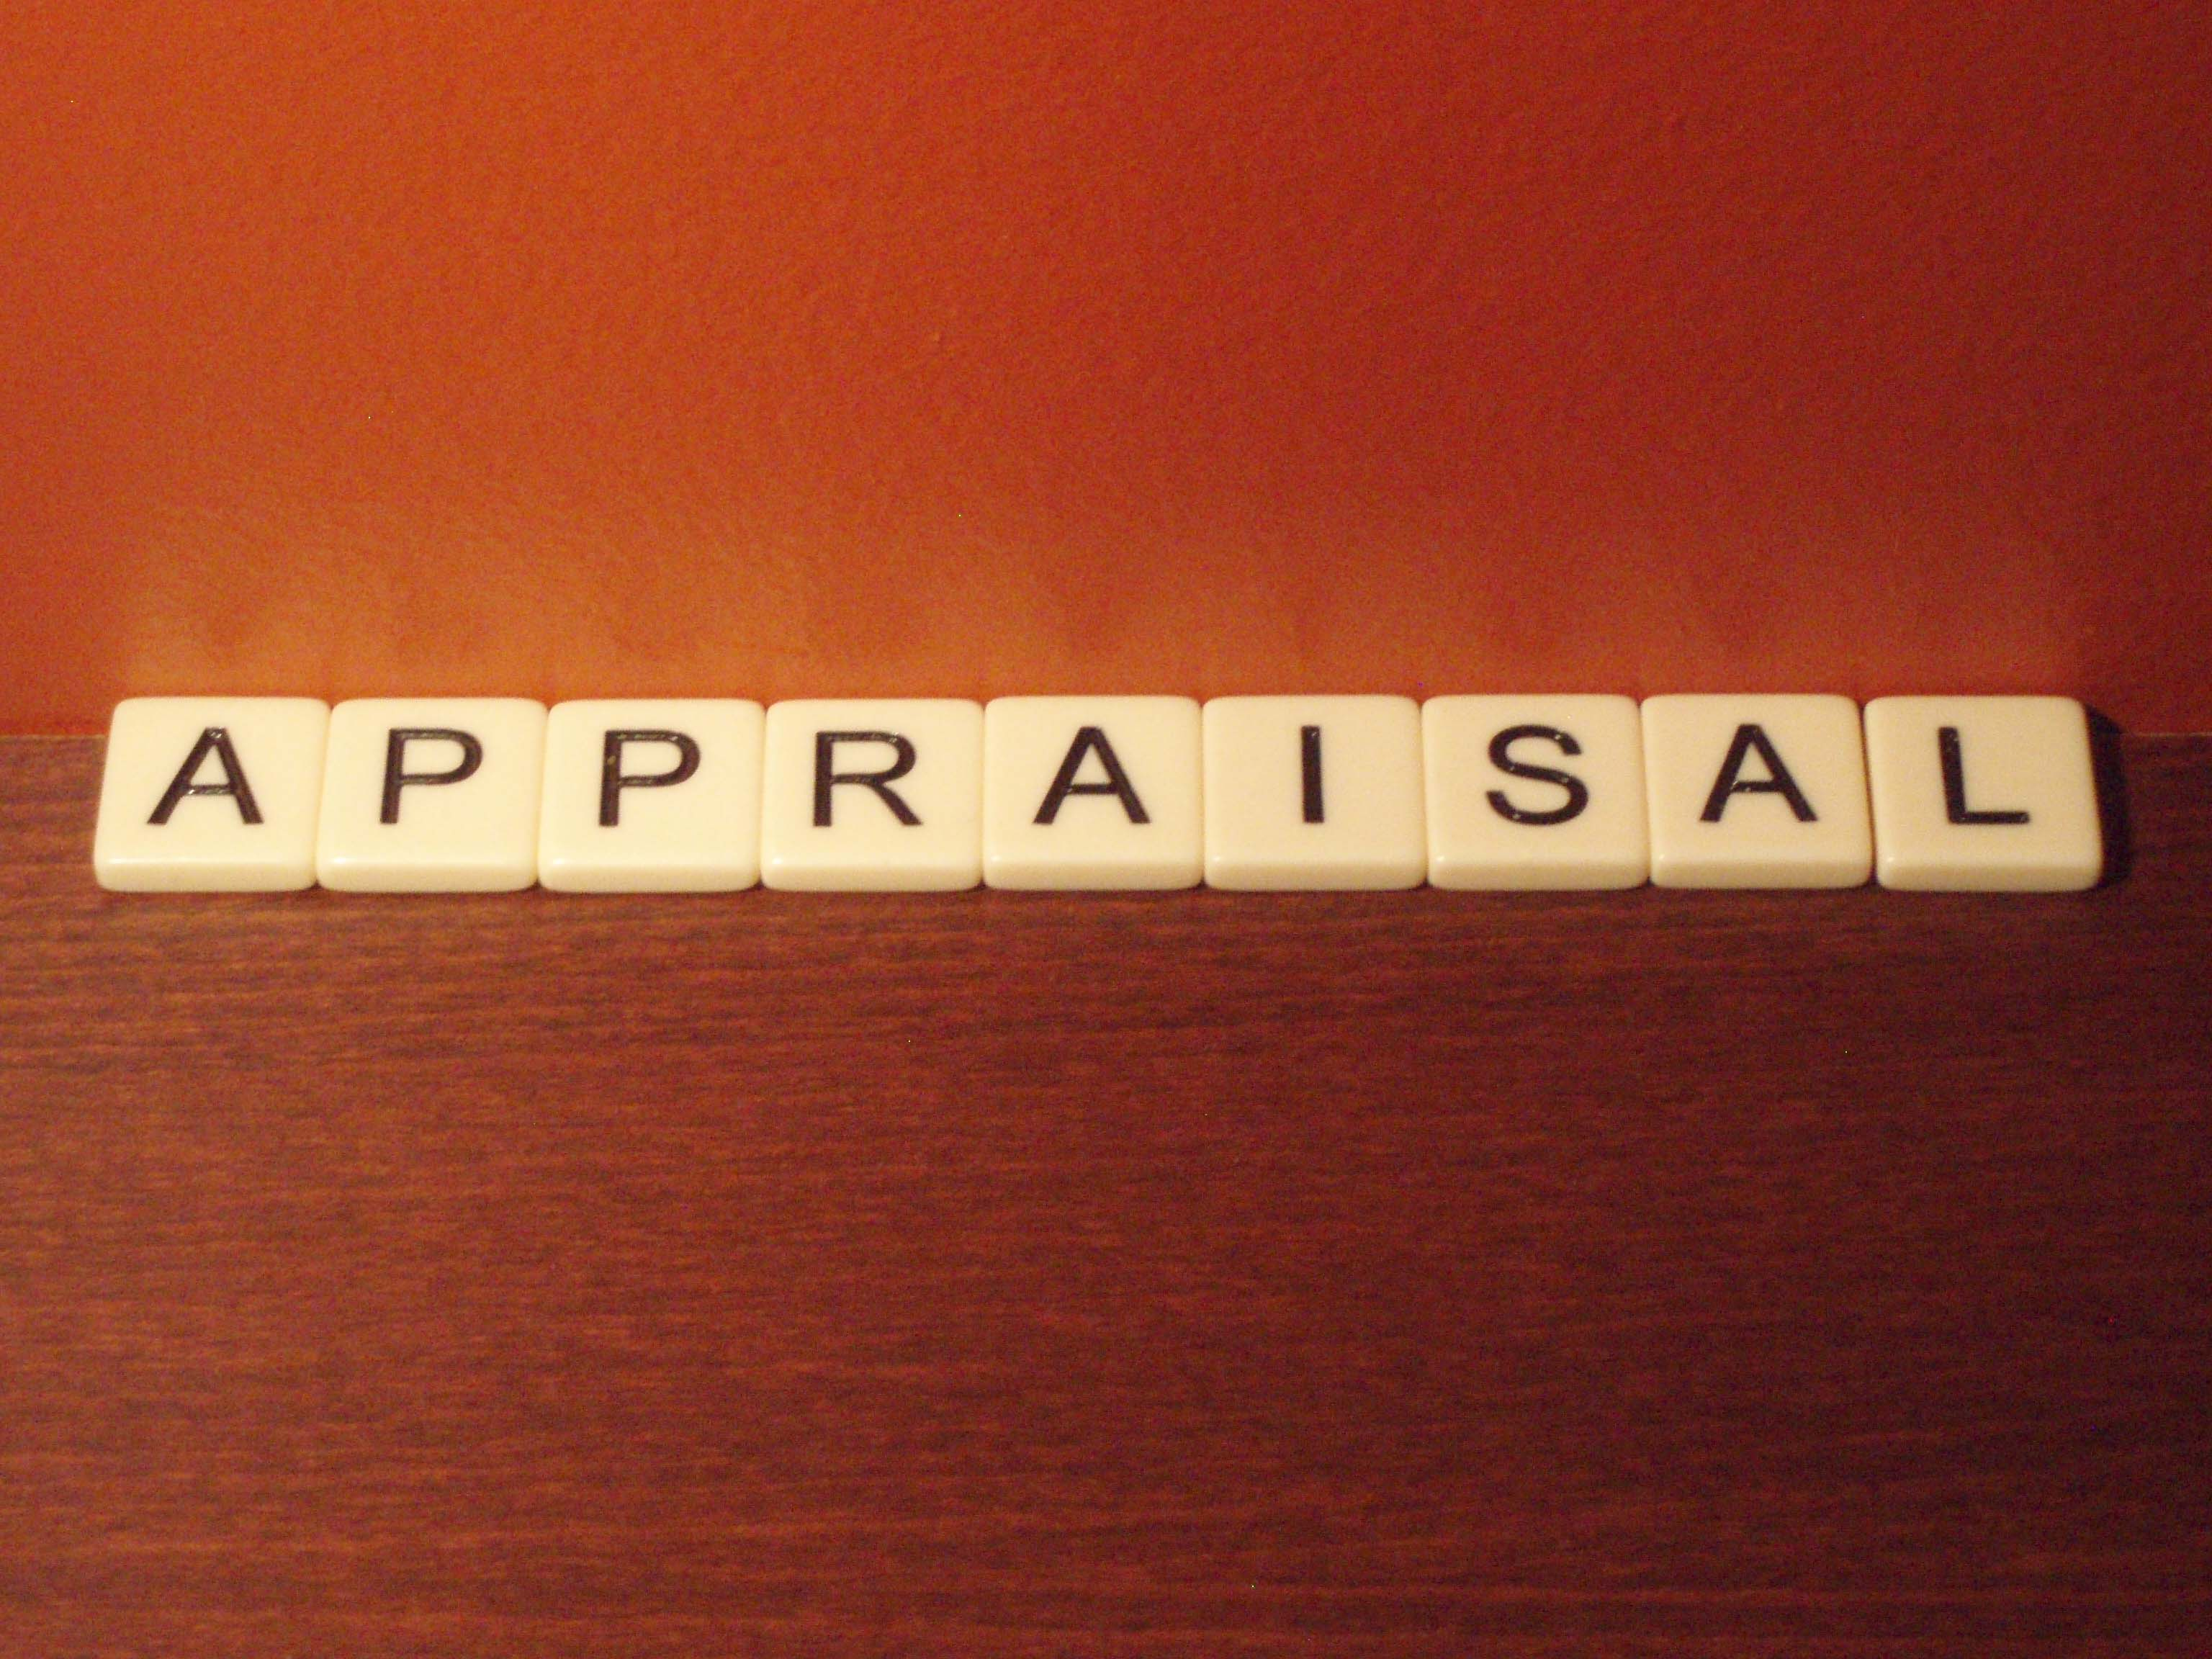 What is an Appraisal? - Real Estate Definition